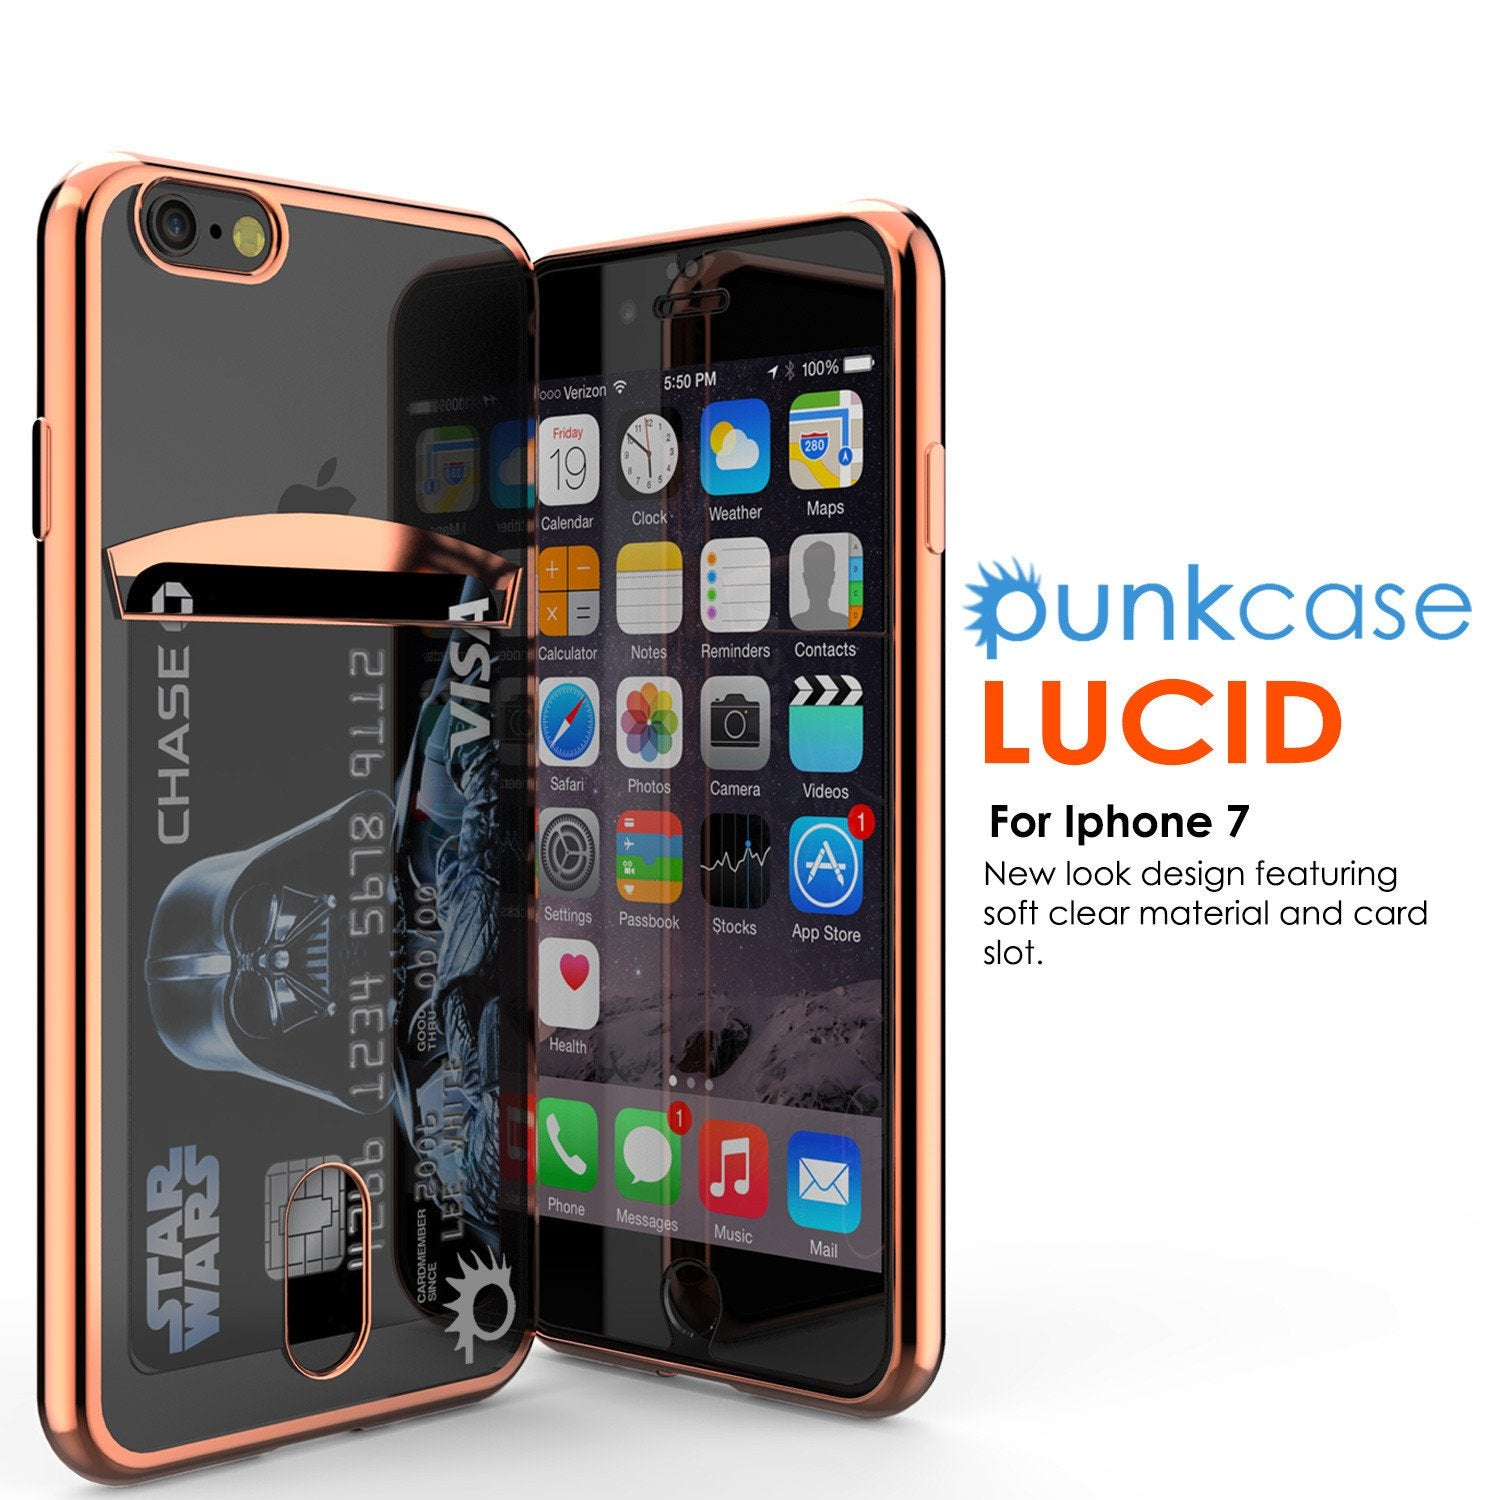 iPhone 7+ Plus Case, PUNKCASE® LUCID Rose Gold Series | Card Slot | SHIELD Screen Protector - PunkCase NZ